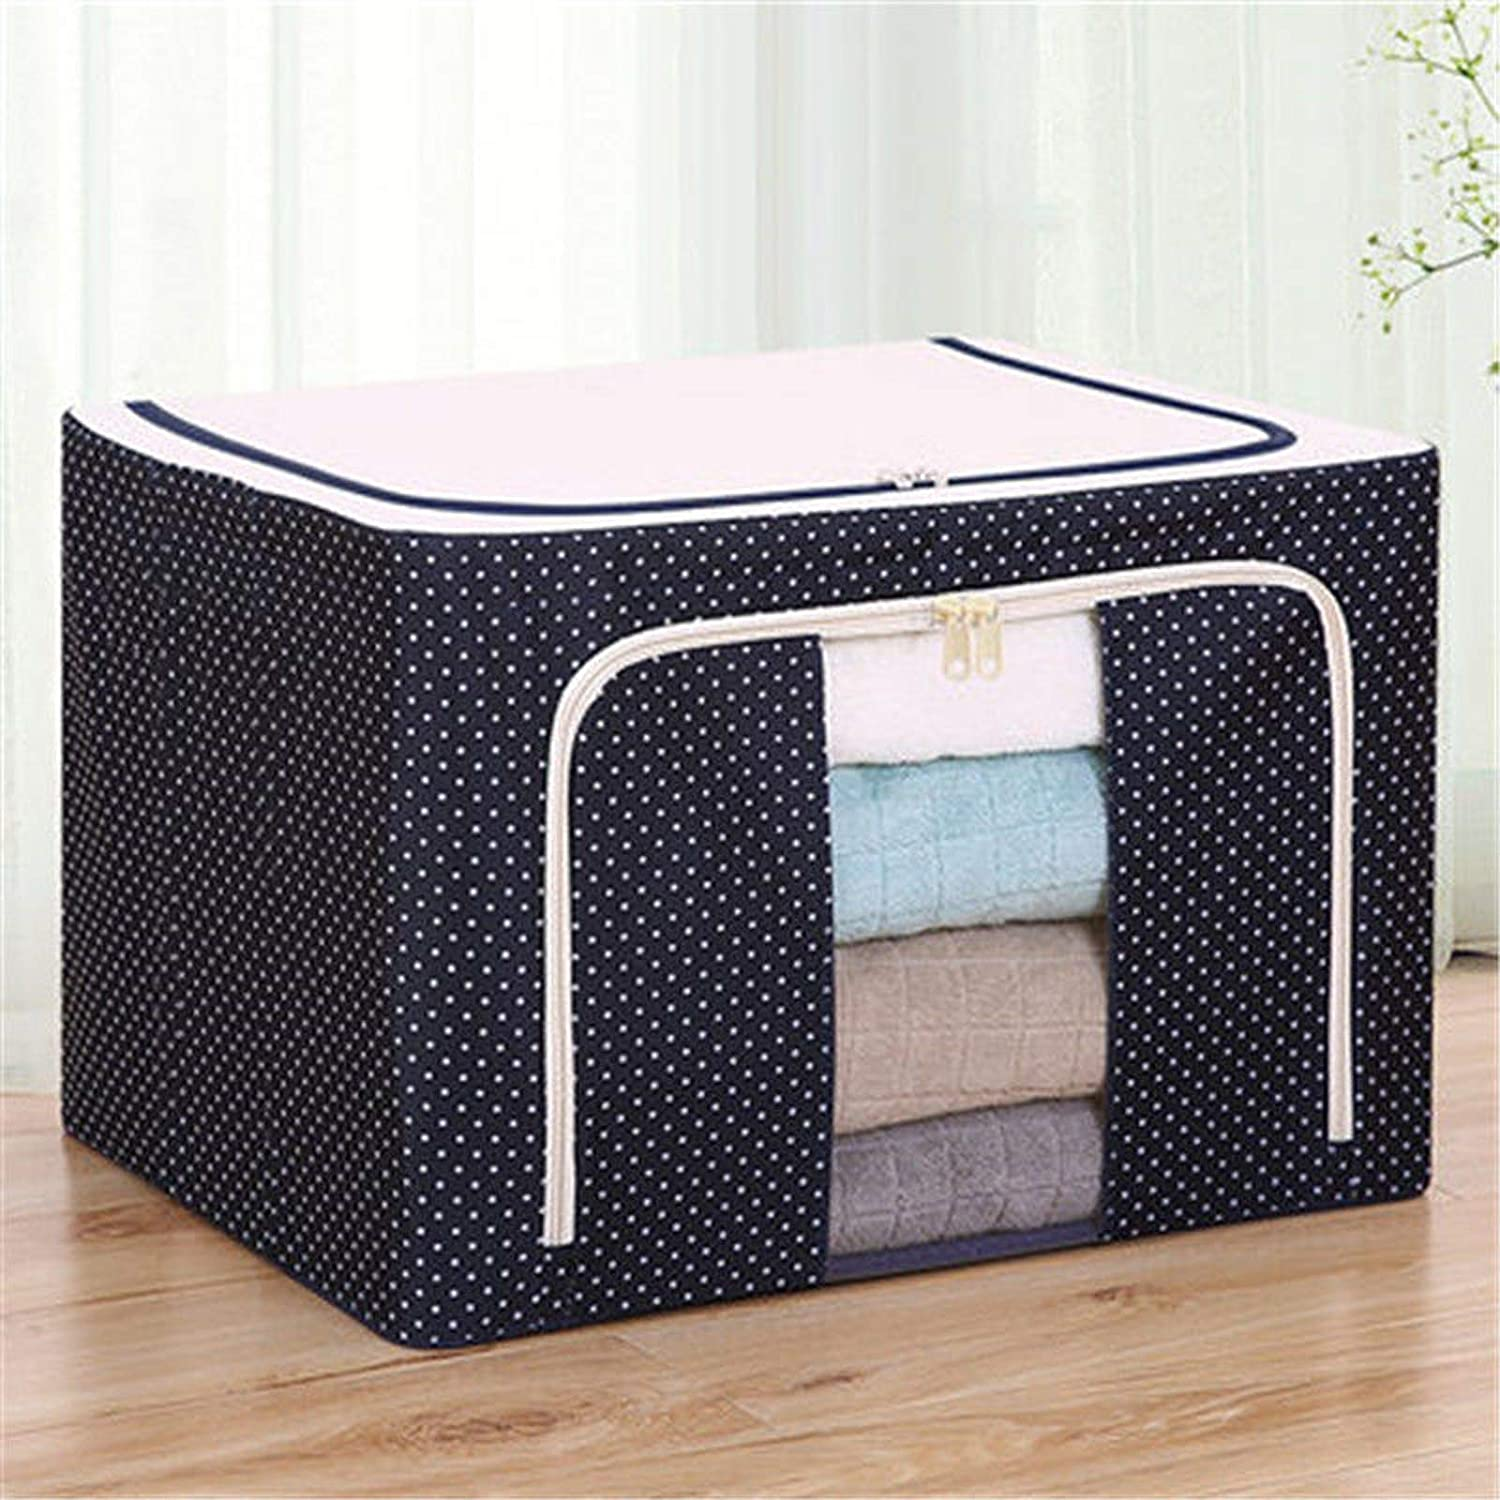 Square Foldable Storage Box, Large Clothes Storage Bags Closet Organizer with Zips, for Home Office Nursery Organiser Clothes Basket Containers,Blue,100L (604240cm)